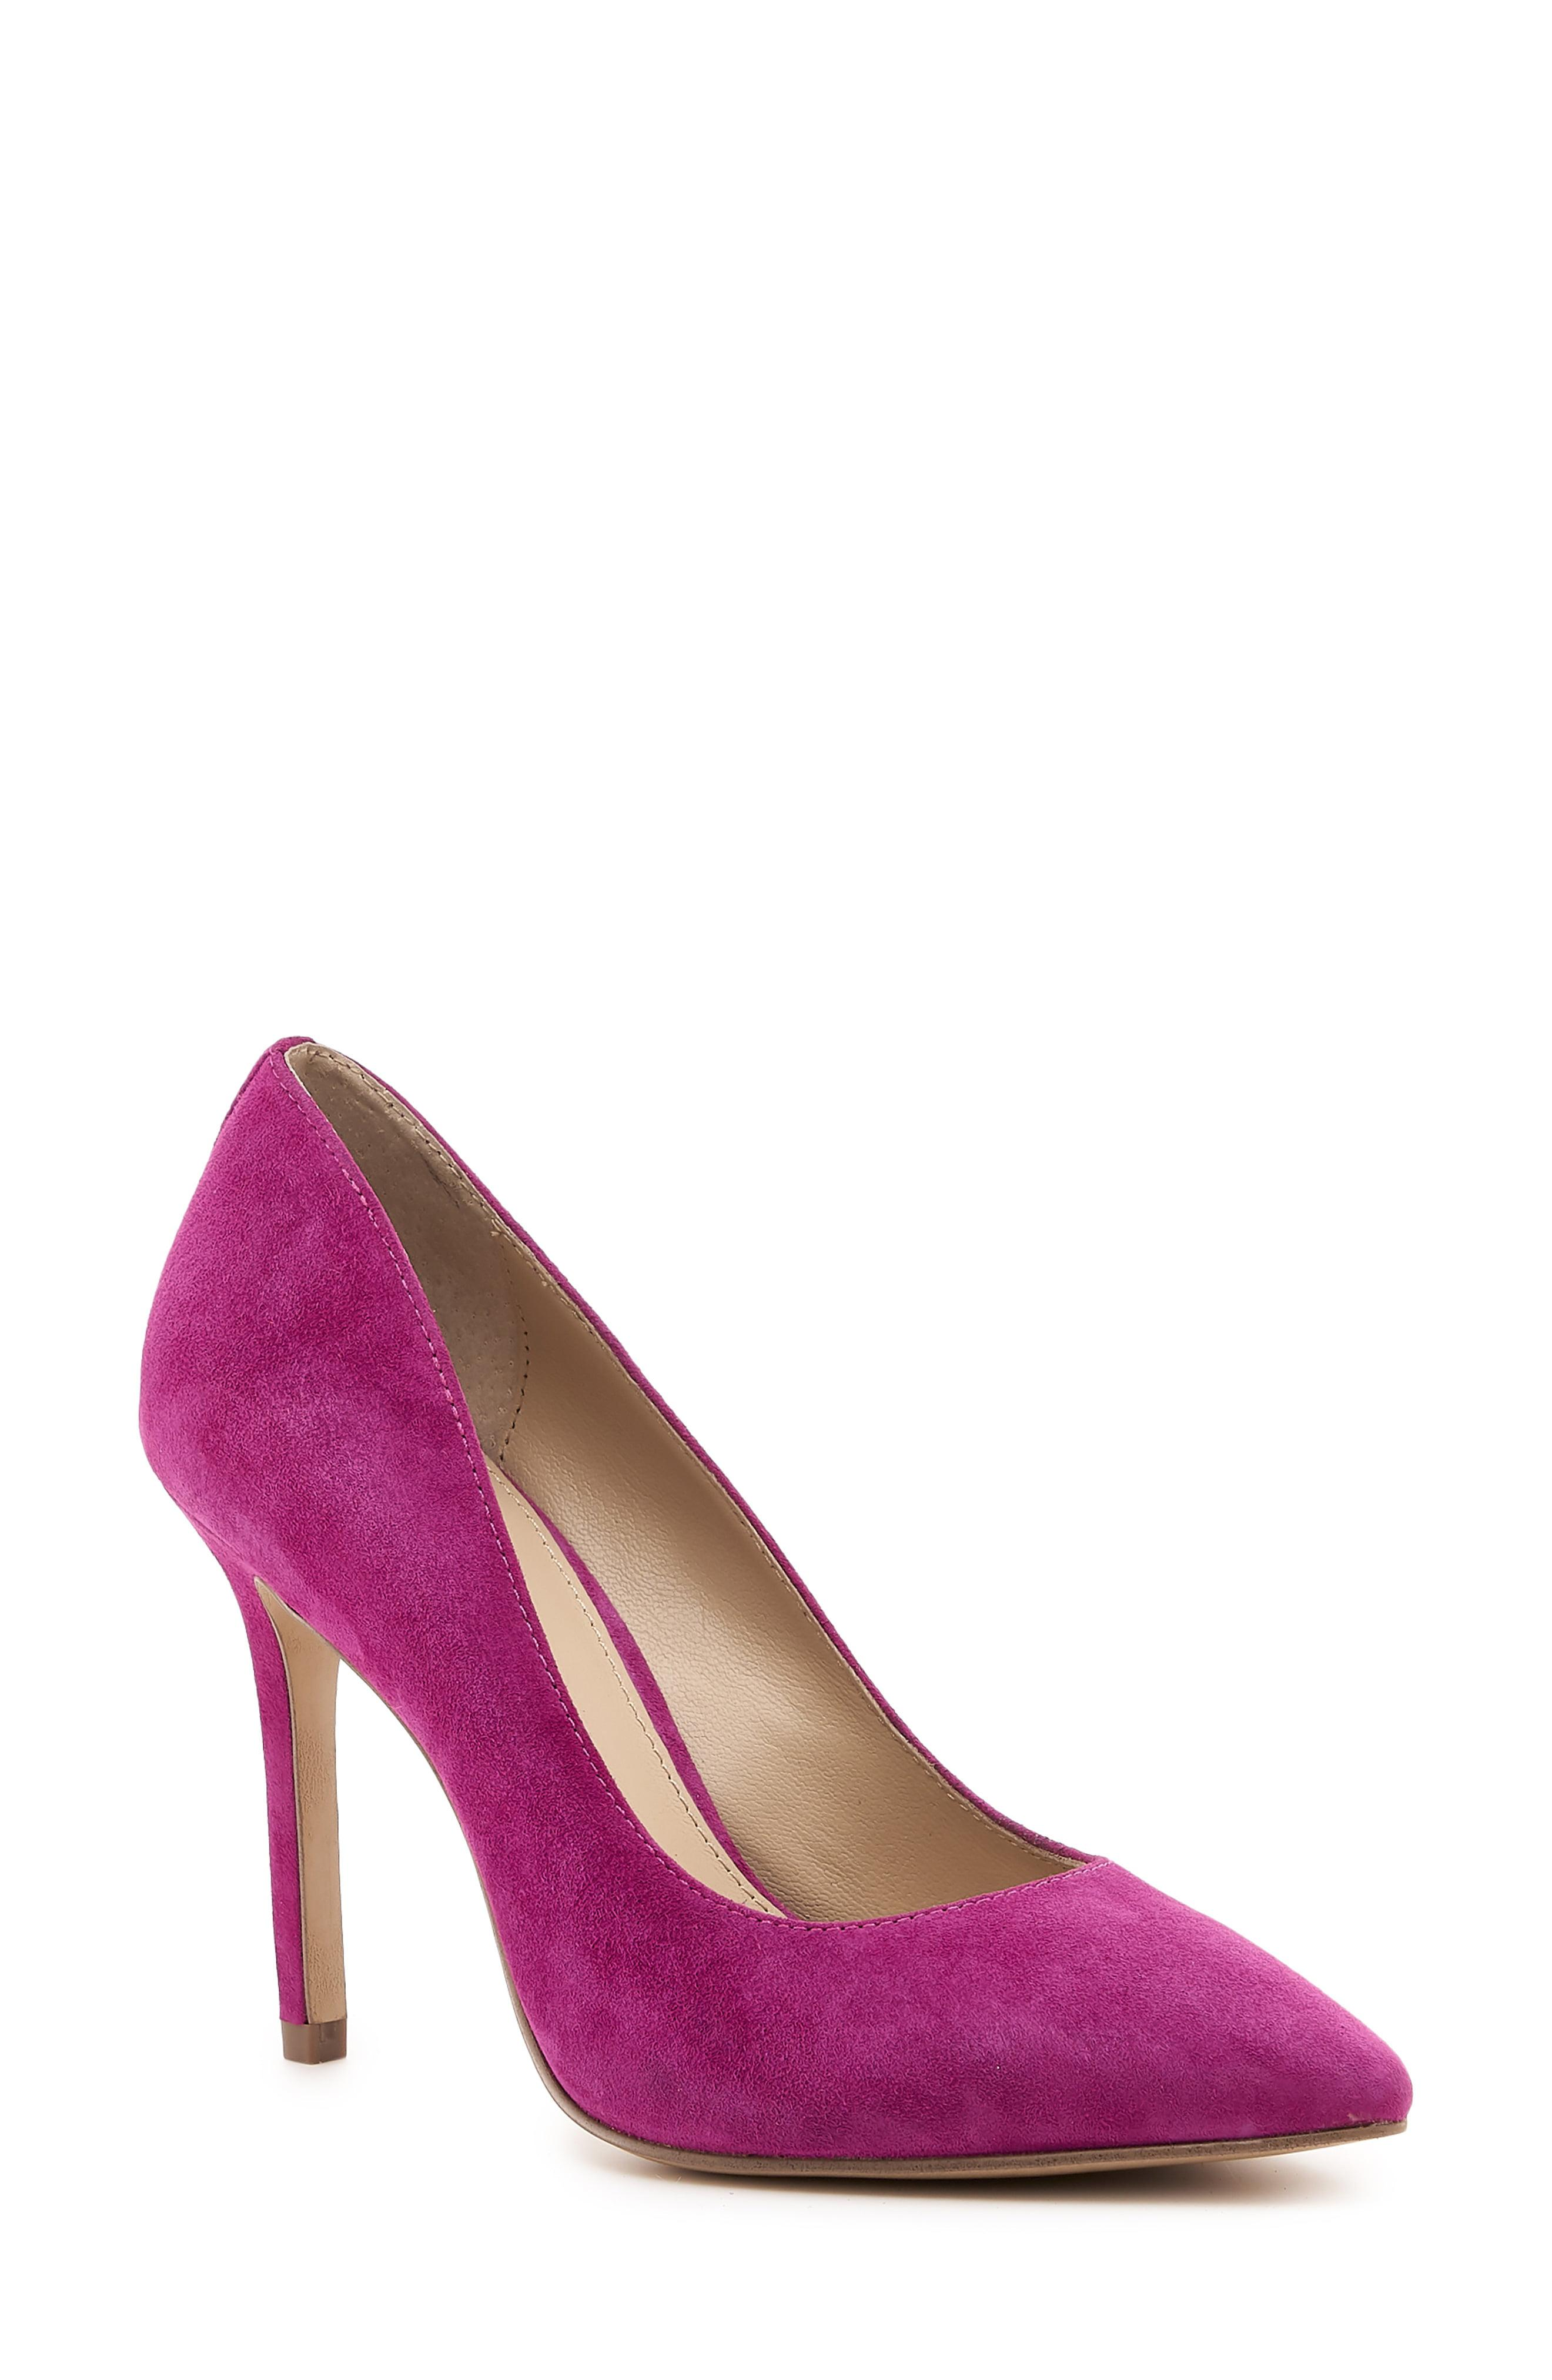 098416144109 Lyst - Botkier Women s Marci Pointed Toe Pumps in Purple - Save 51%